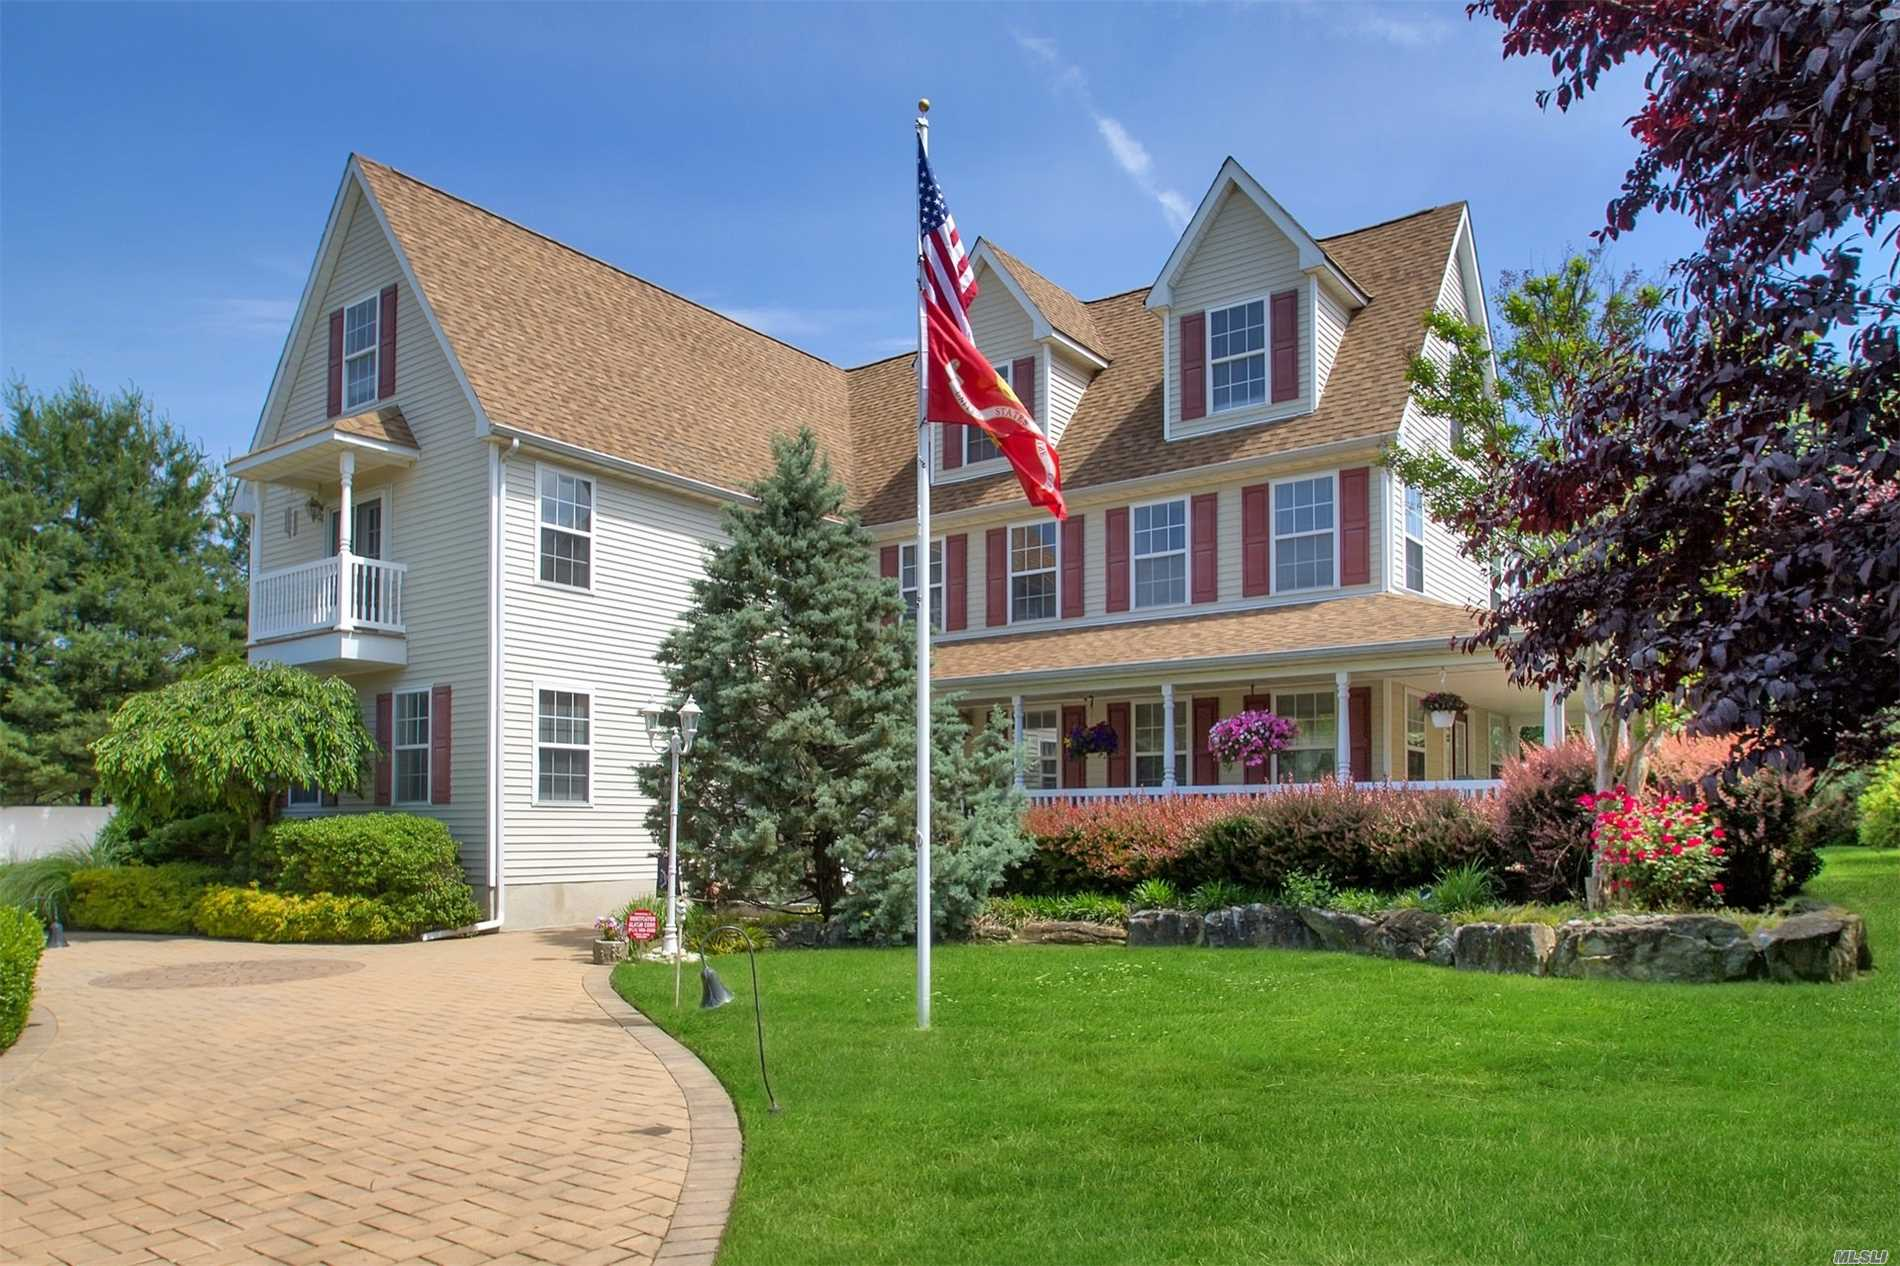 This Beautiful Custom Built 4250 Sqft.Home With Architectural Details Throughout! Specially Customized Open Floor Plan Modifications. Built As 3 Berm With Oversized Mastr Br Suite. Optional 4th Br/Office On The Fin. 3rd Floor. This Home Offers Newly Re-Built Full Wrap Around Porch, Gourmet Eik, Hardwood Floors Throughout! Must See To Appreciate!! Many More Updates! Reduced From 879000!!!